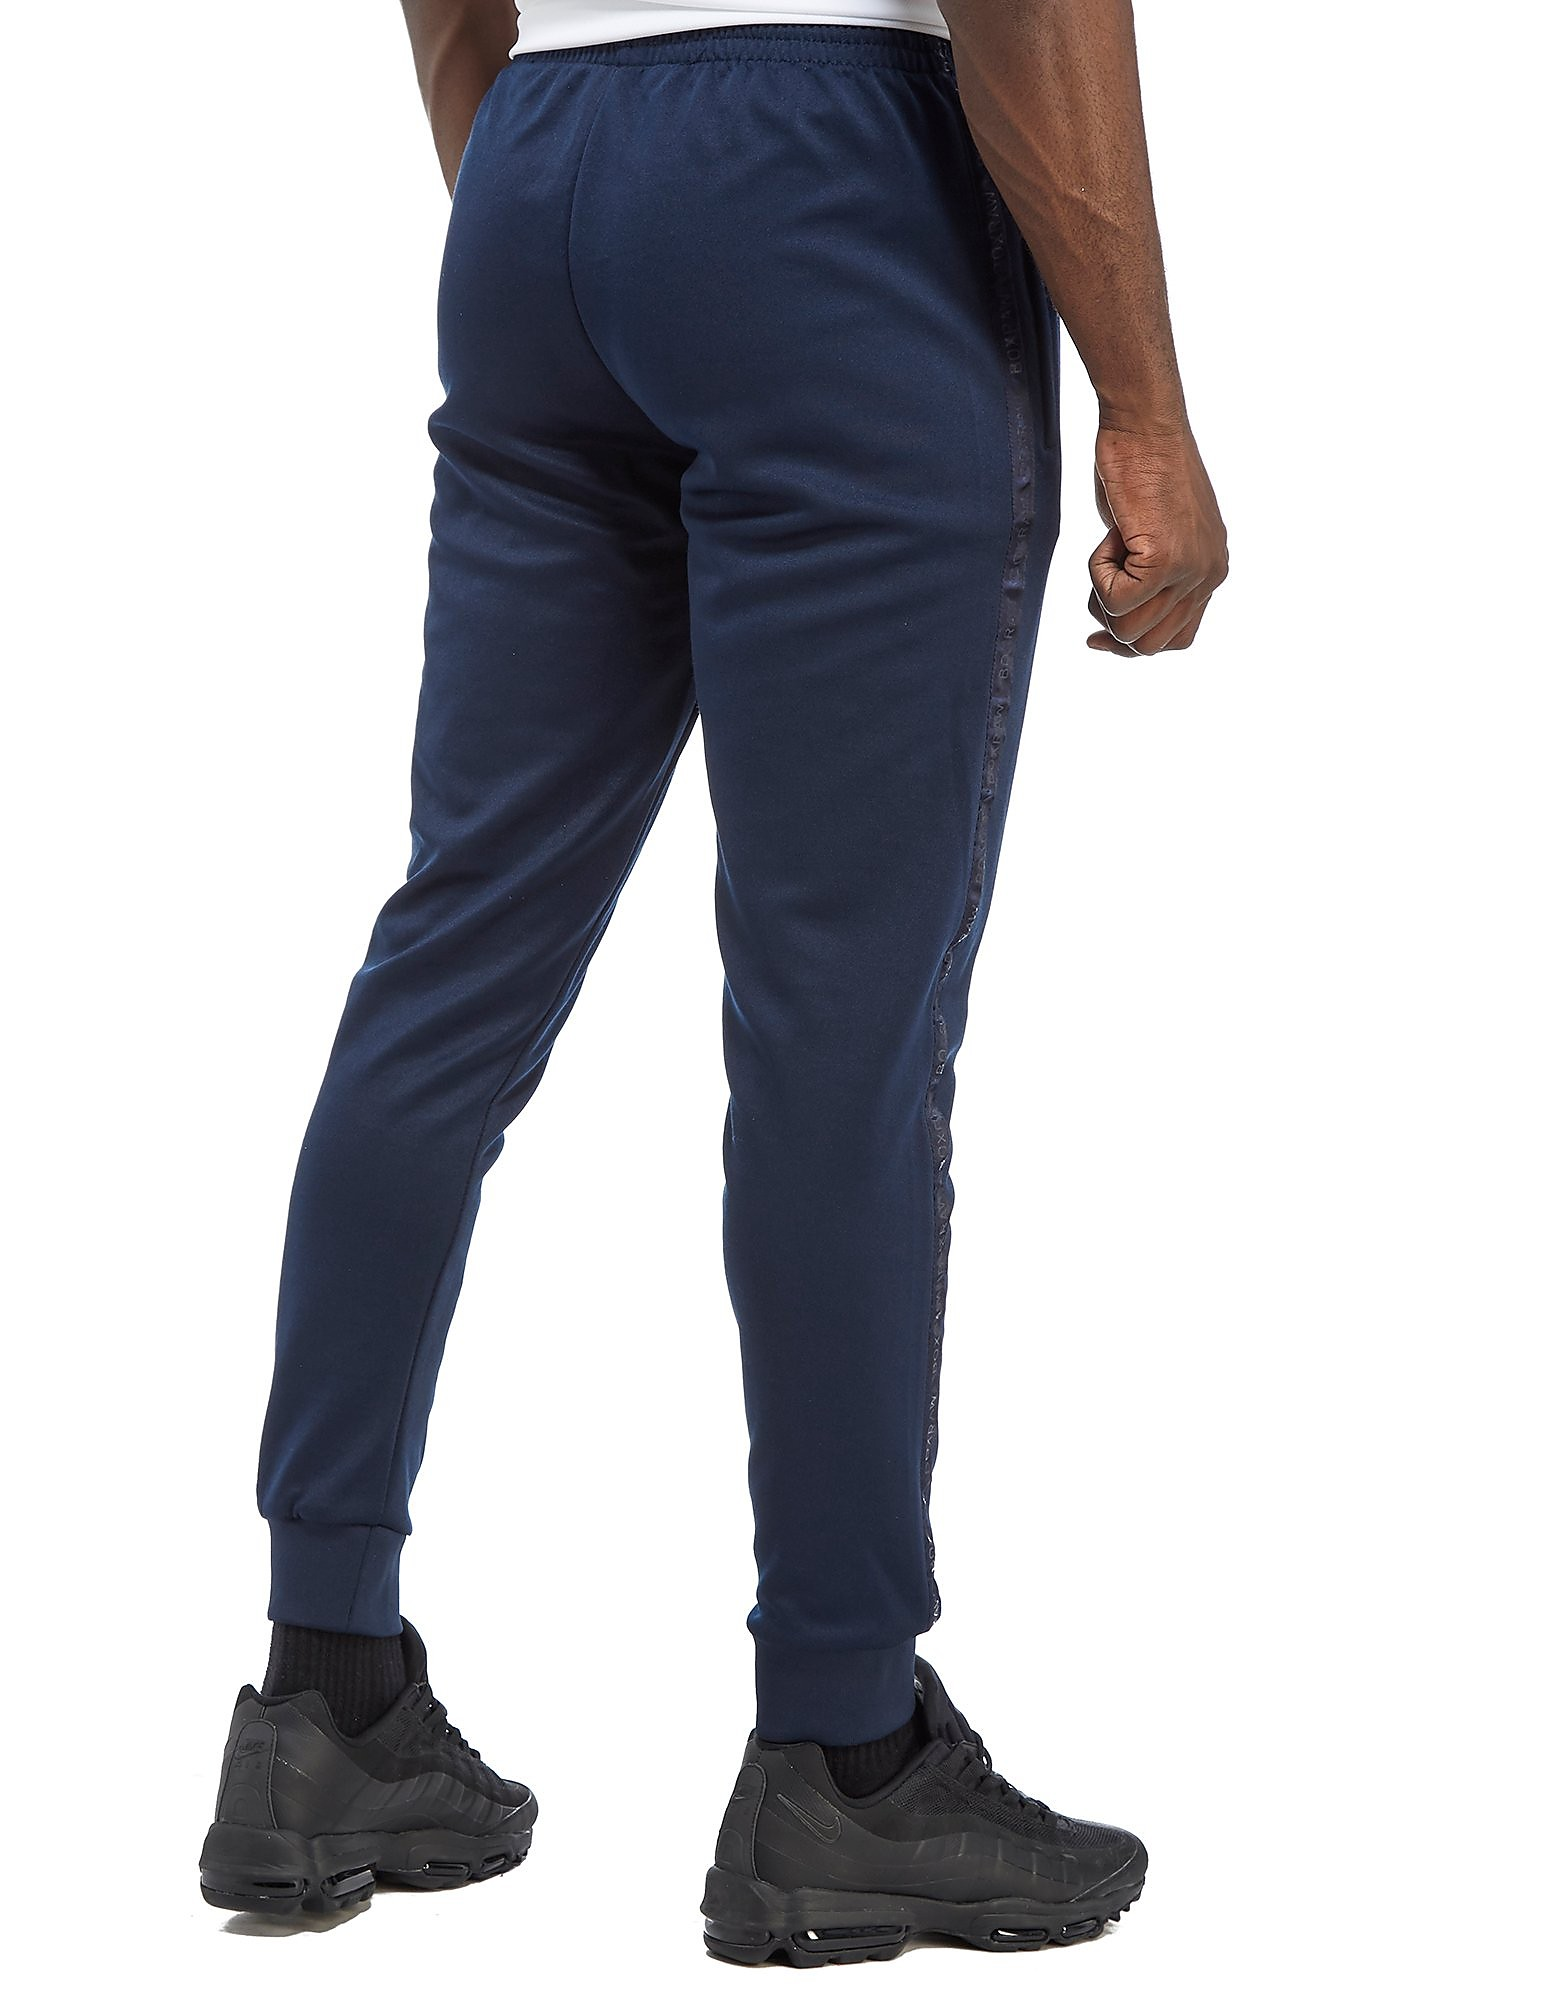 BOXRAW Whitaker Bottoms